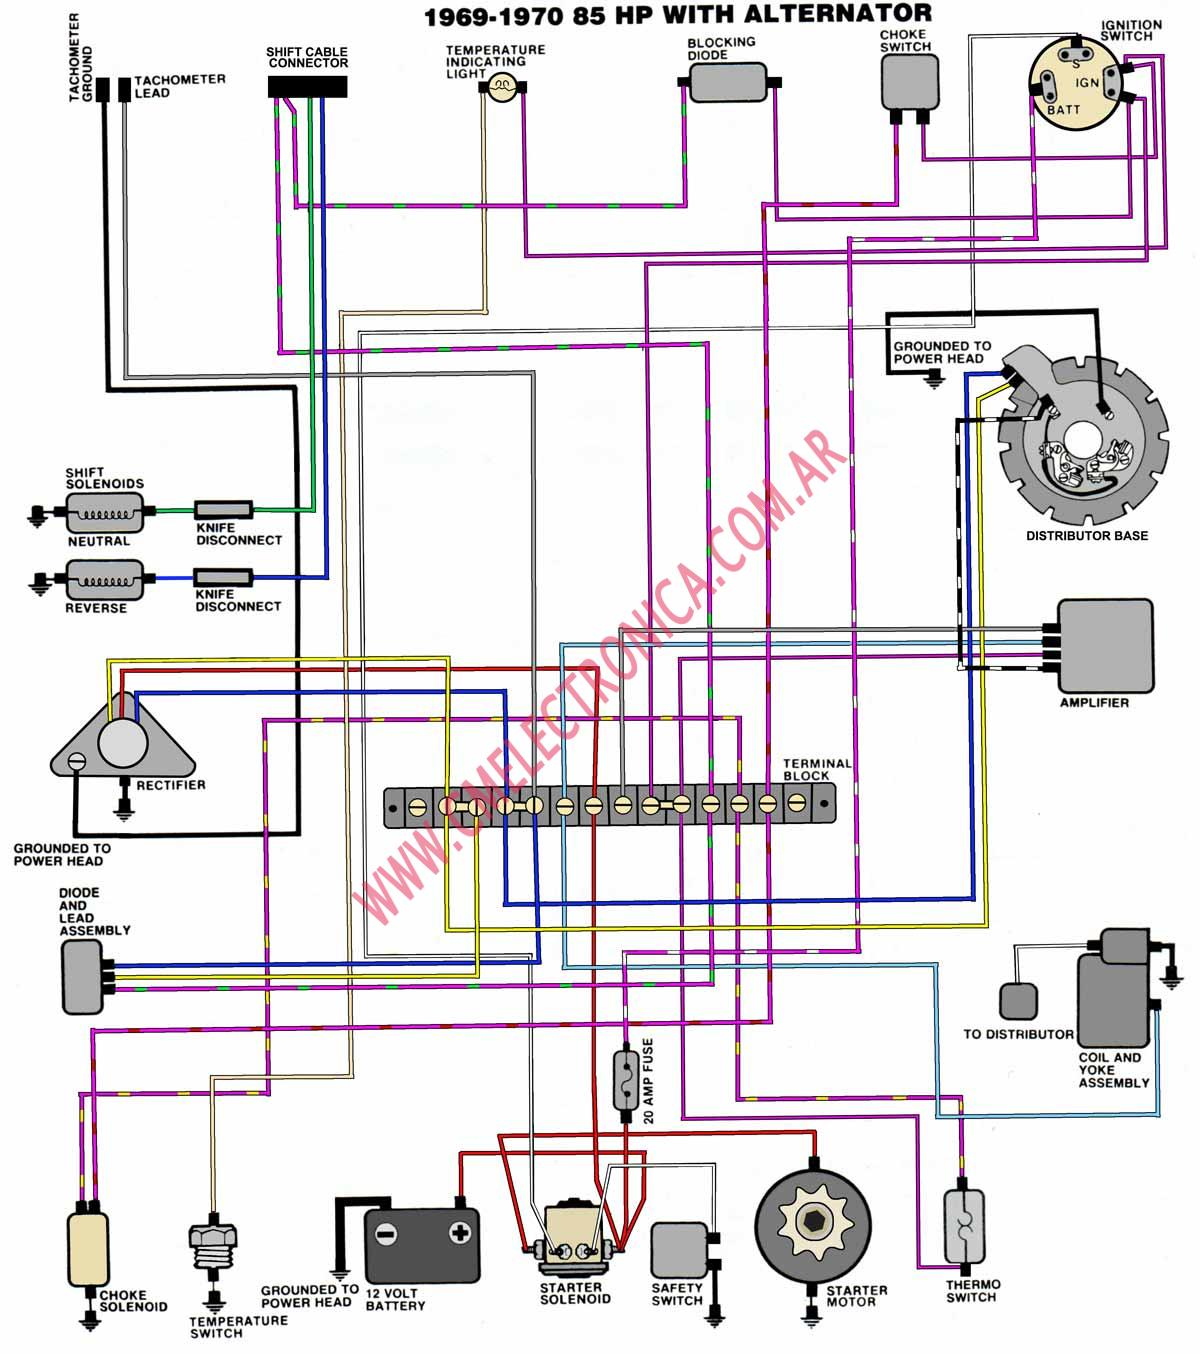 evinrude_johnson 69_70_v4 suzuki dt65 wiring diagram suzuki wiring diagrams instruction Boat Electrical Wiring Diagrams at crackthecode.co